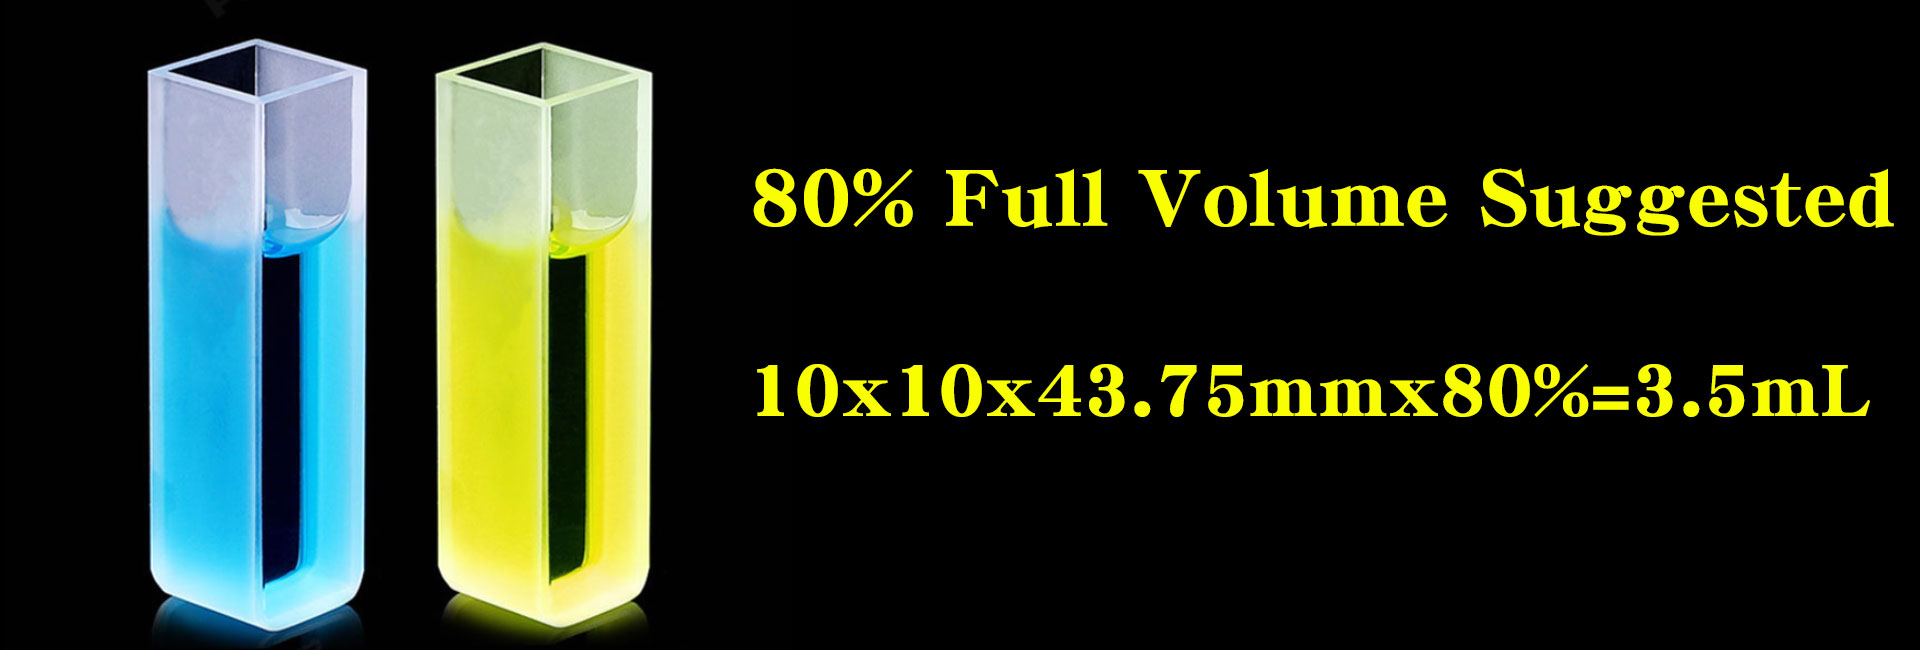 Cuvette Volume-Fill 80 Full